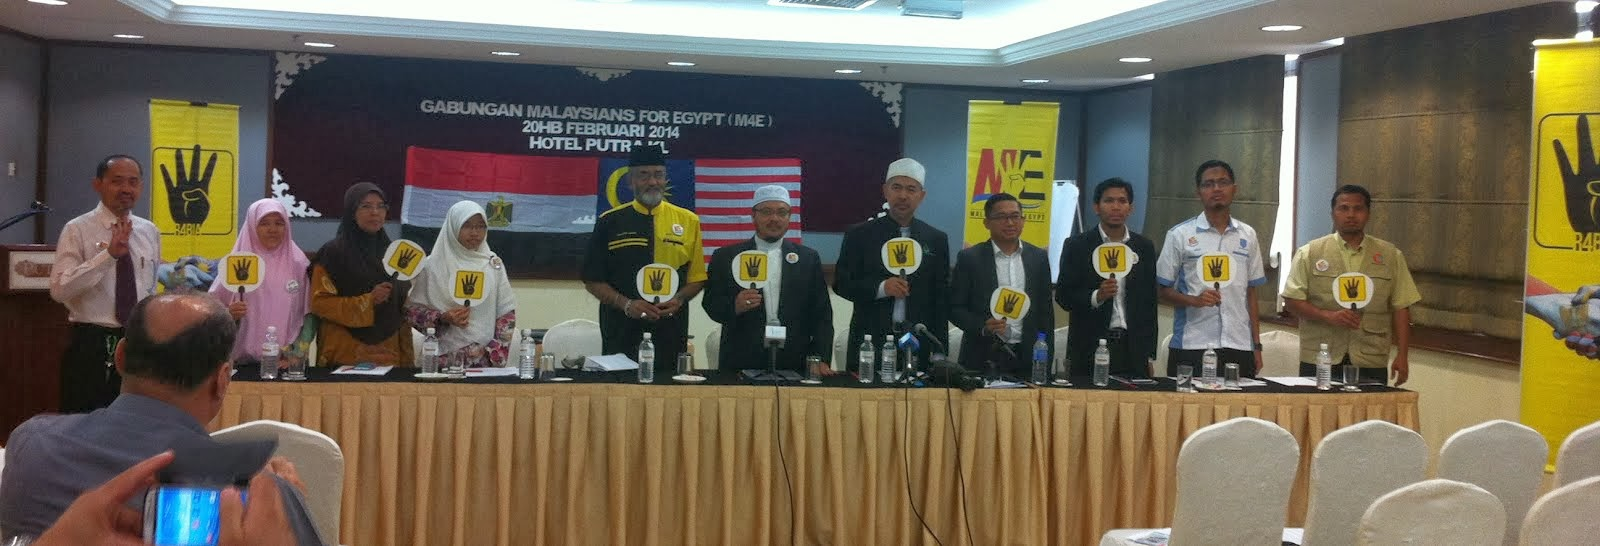 MALAYSIA MUST SUPPORT TURKEY DENOUNCE ZIONIST CC MILITARY COUP IN EGYPT !!